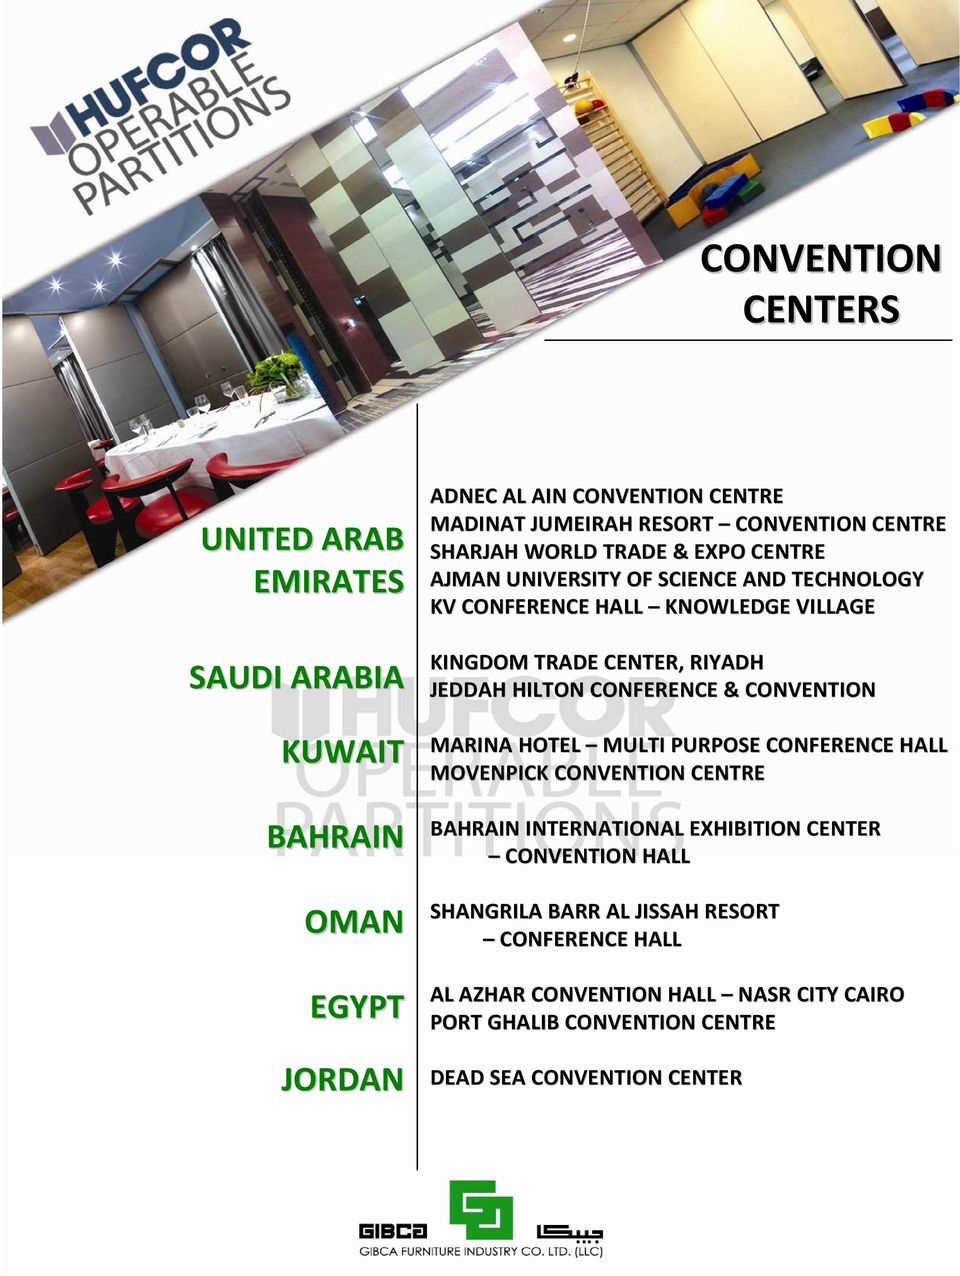 JEDDAH HILTON CONFERENCE & CONVENTION MARINA HOTEL MULTI PURPOSE CONFERENCE HALL MOVENPICK CONVENTION CENTRE BAHRAIN INTERNATIONAL EXHIBITION CENTER